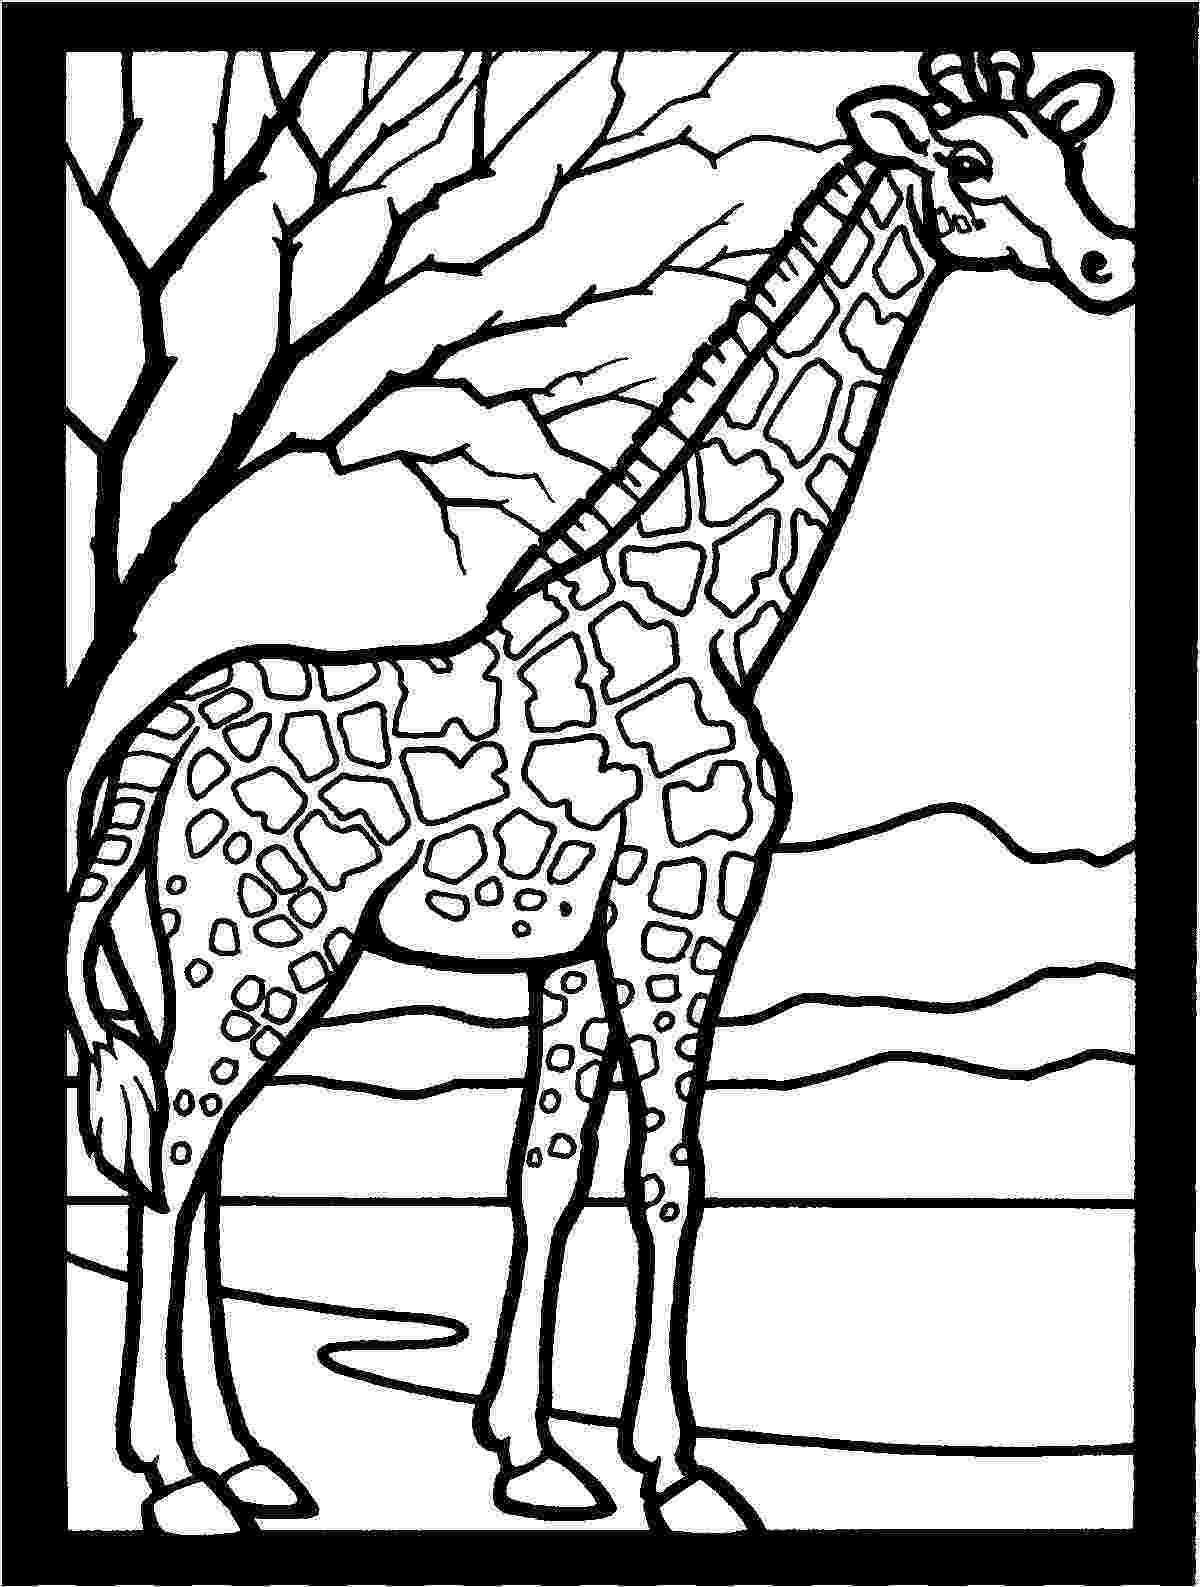 colouring pages for giraffe 17 best coloring pages images on pinterest coloring pages for colouring giraffe